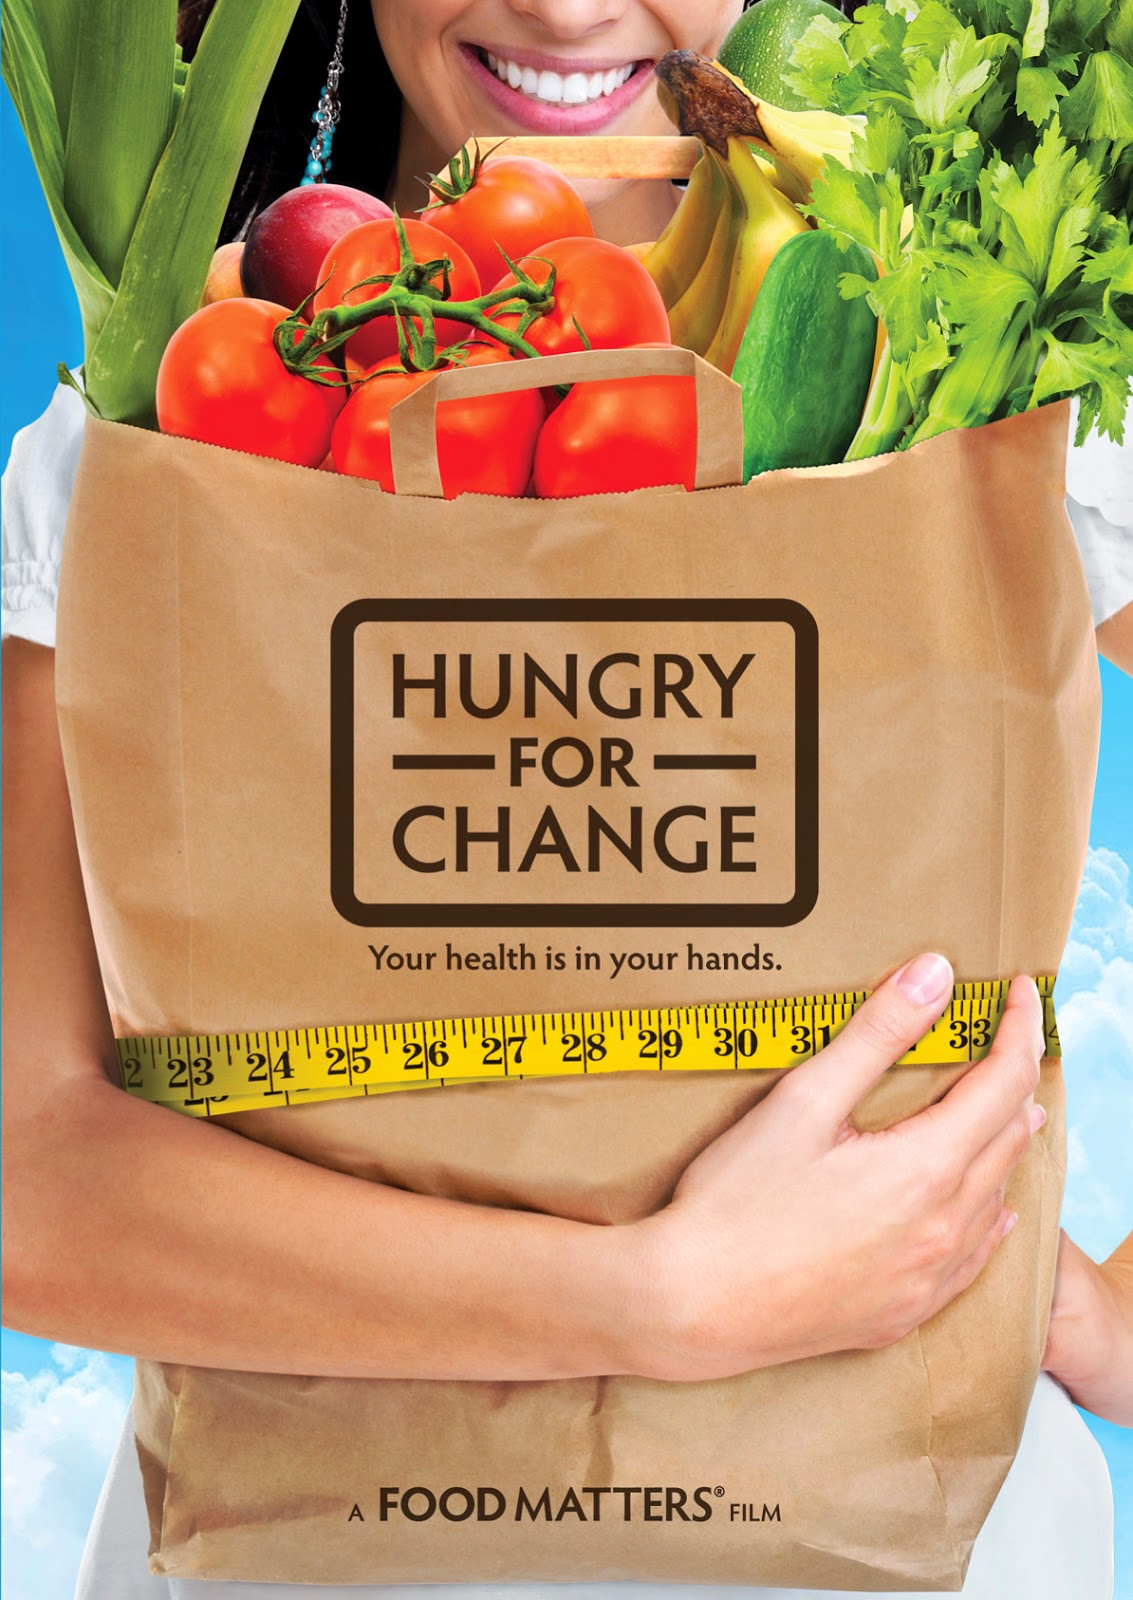 Documentary about dieting: Hungry for Change